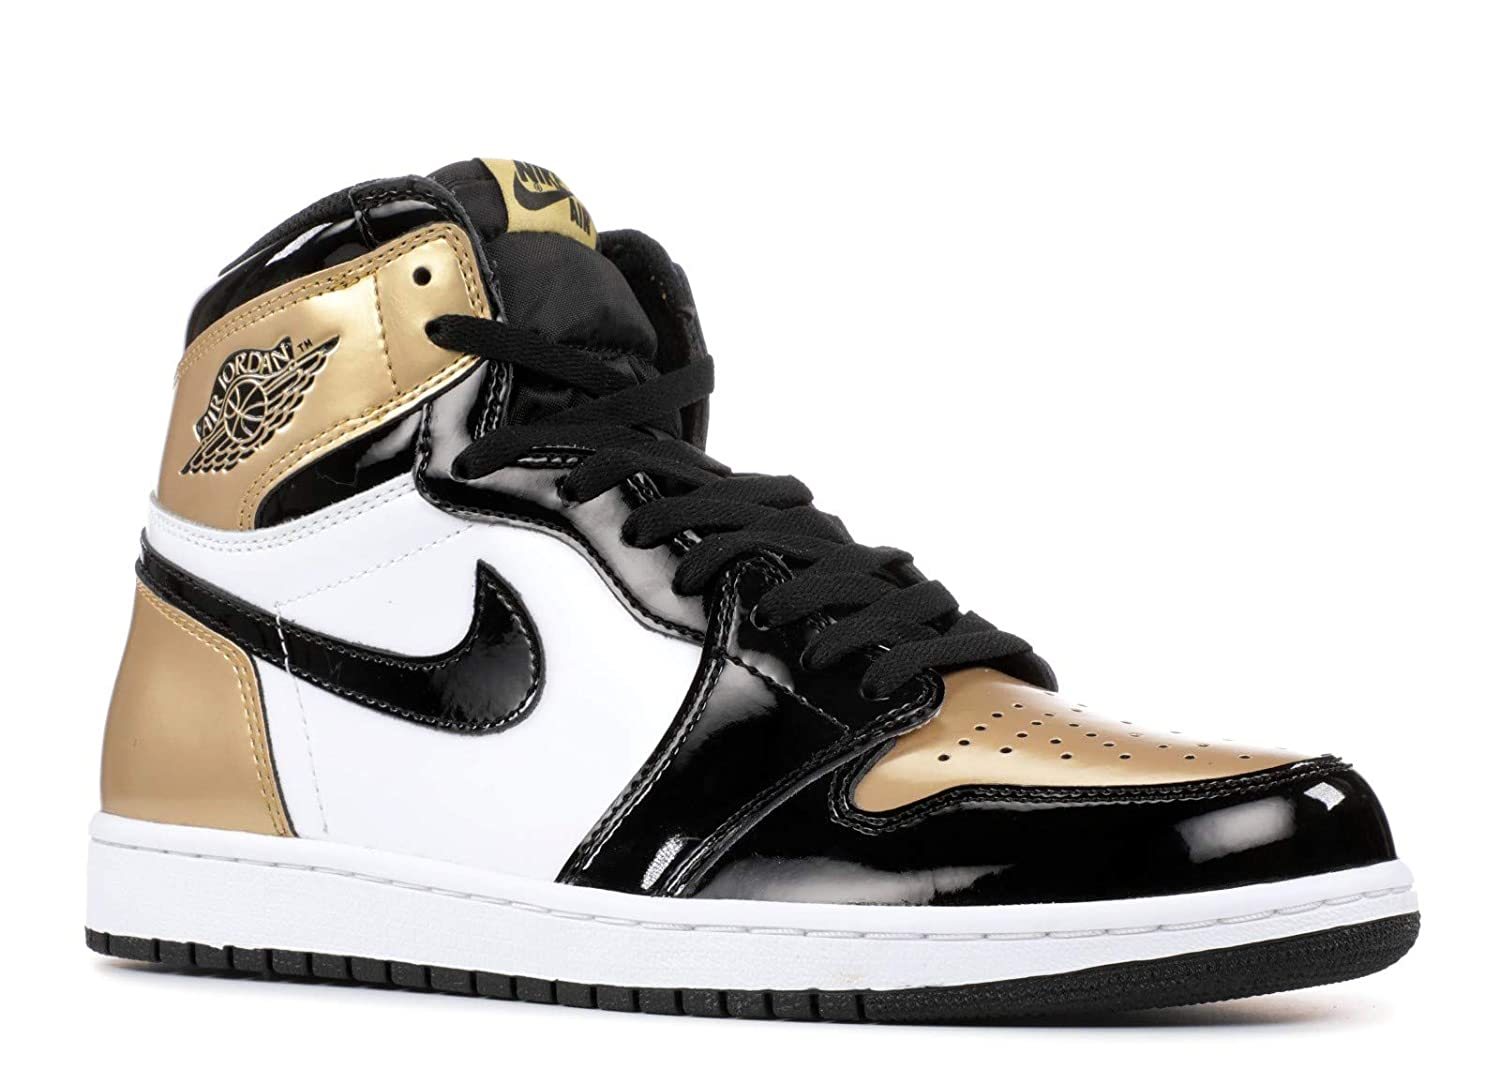 86ae9b12c84bf7 Air Jordan 1 Retro High OG NRG  Gold Top 3  - 861428-001 - Size 11 -   Amazon.co.uk  Shoes   Bags